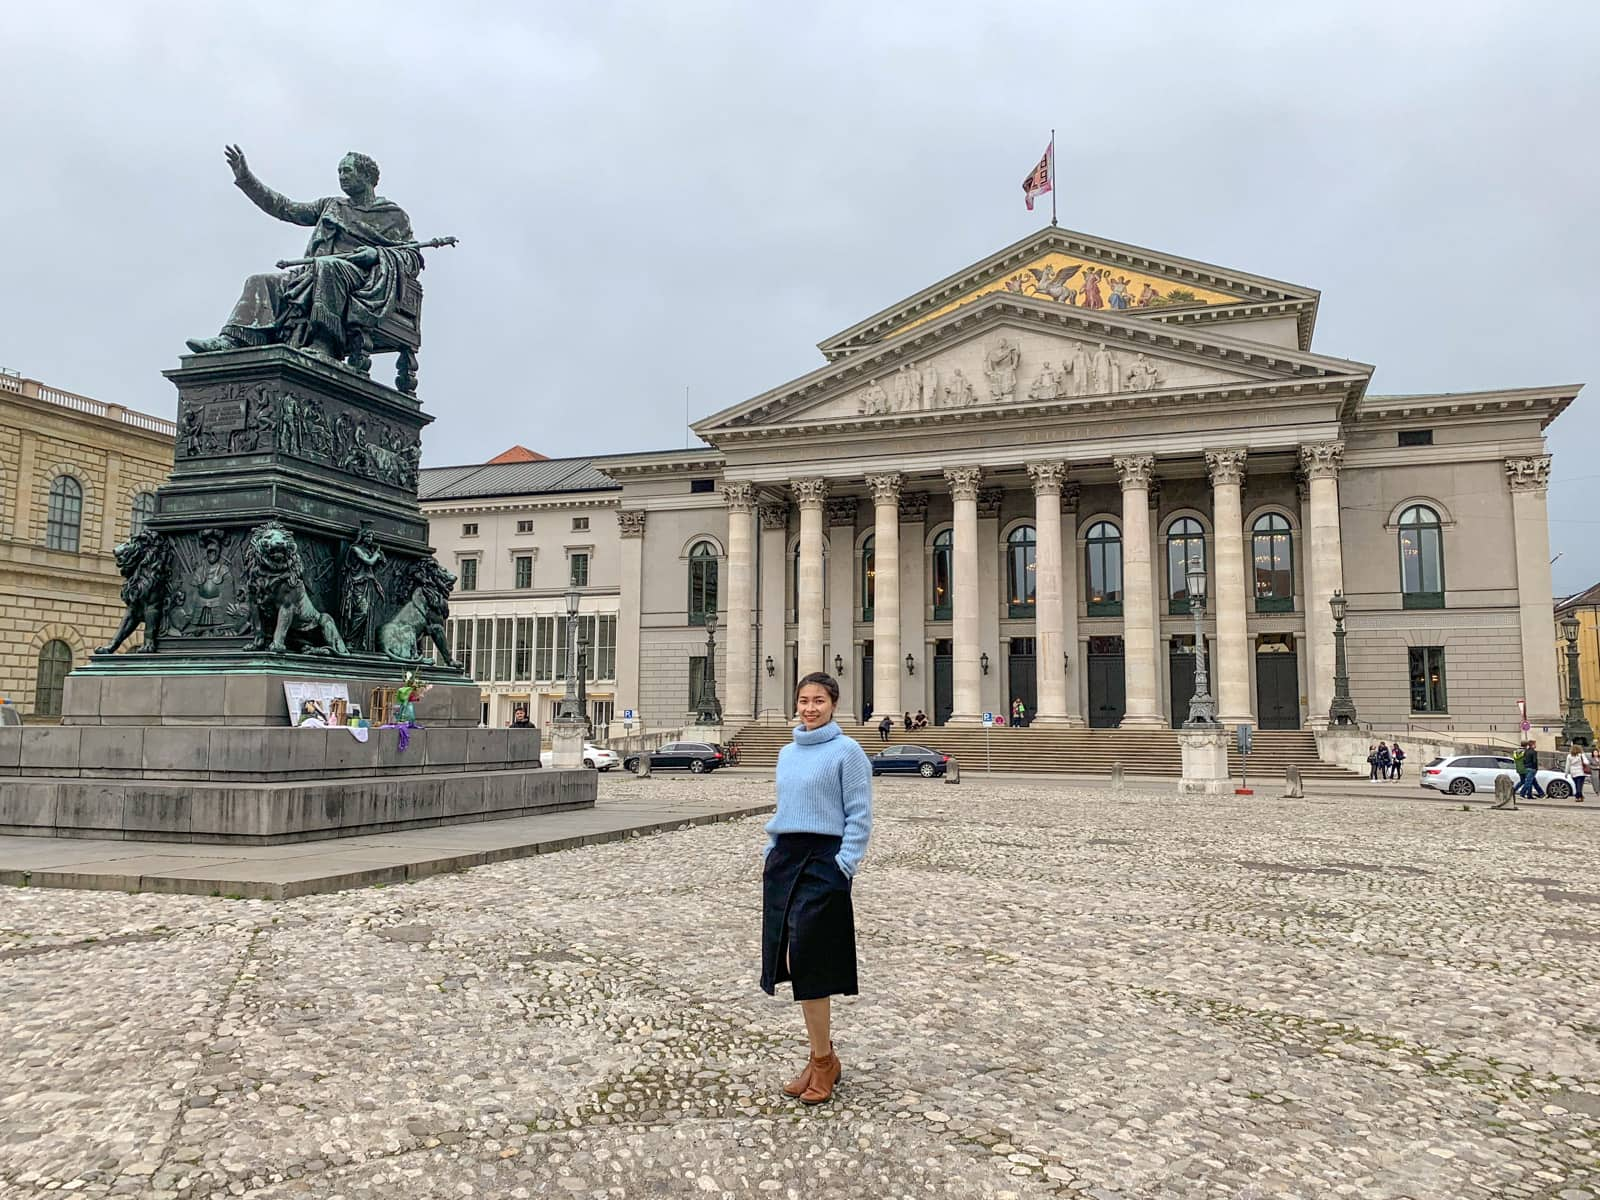 A woman in a blue sweater and black skirt in the foreground, she's standing in front of an old building in Munich